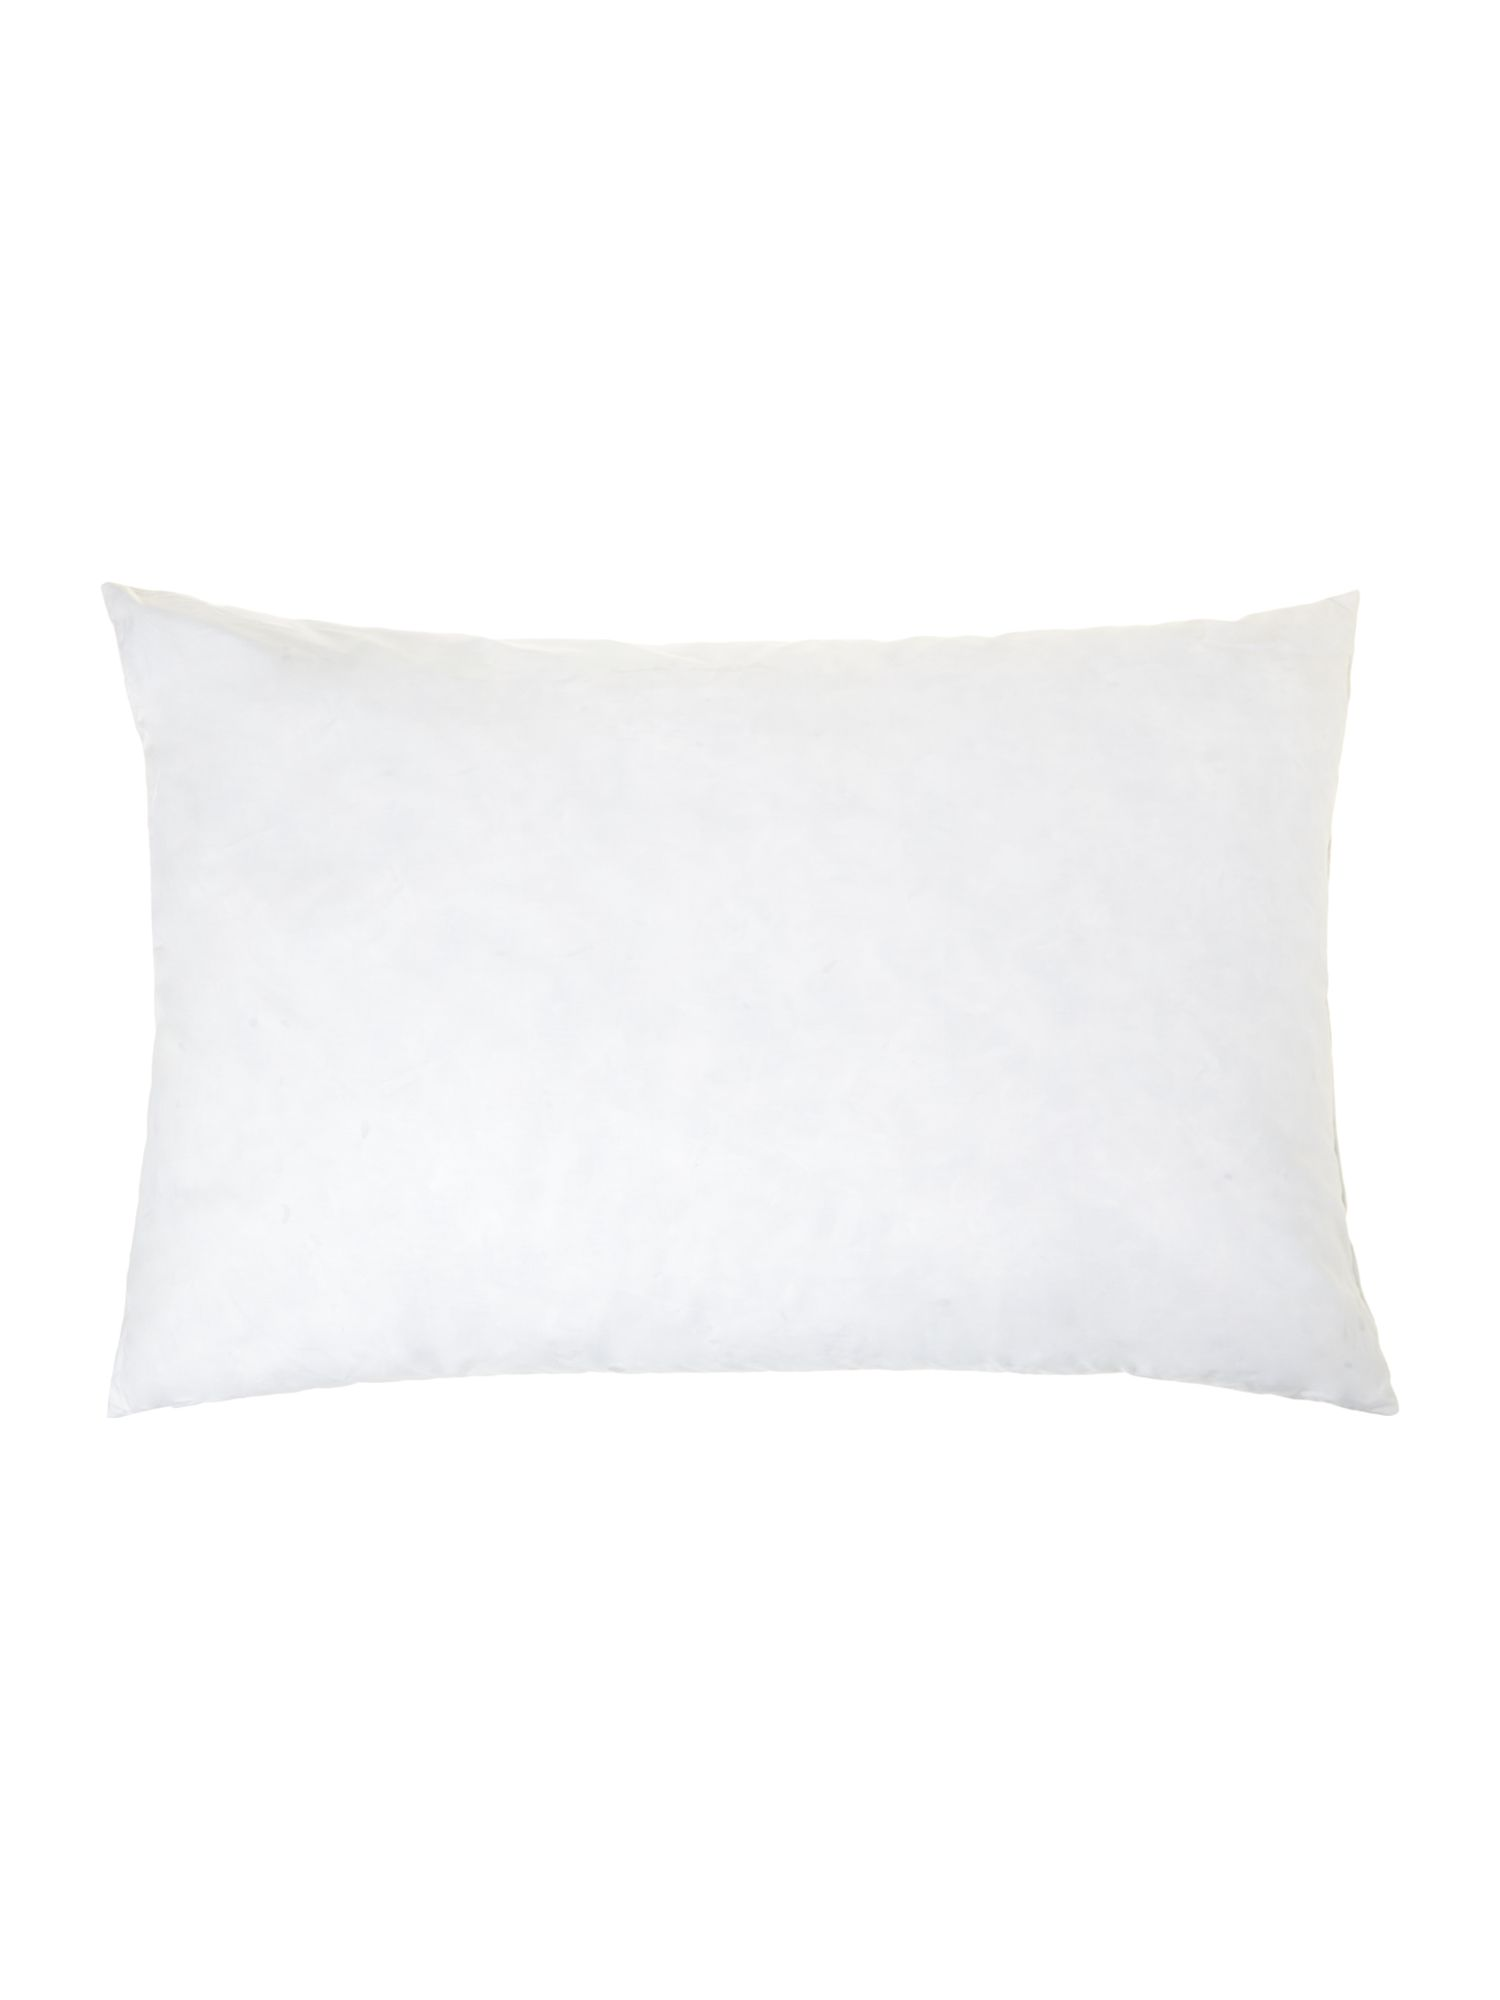 Feather & down pillow pair